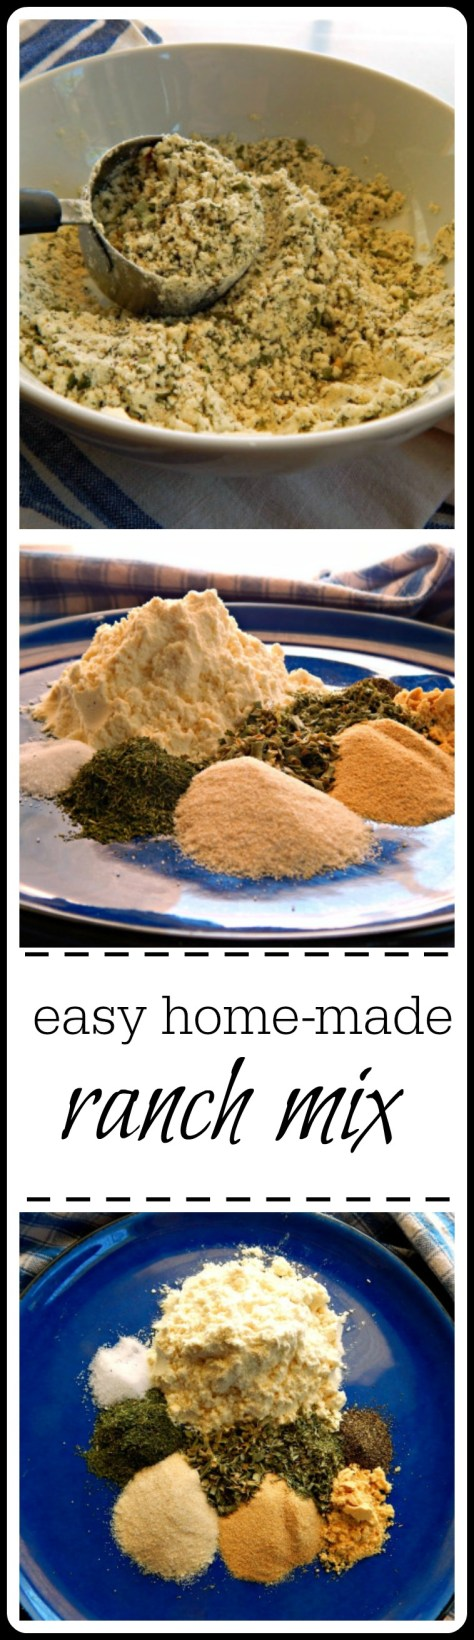 Easy Home-made Ranch Mix & Ranch Dressing